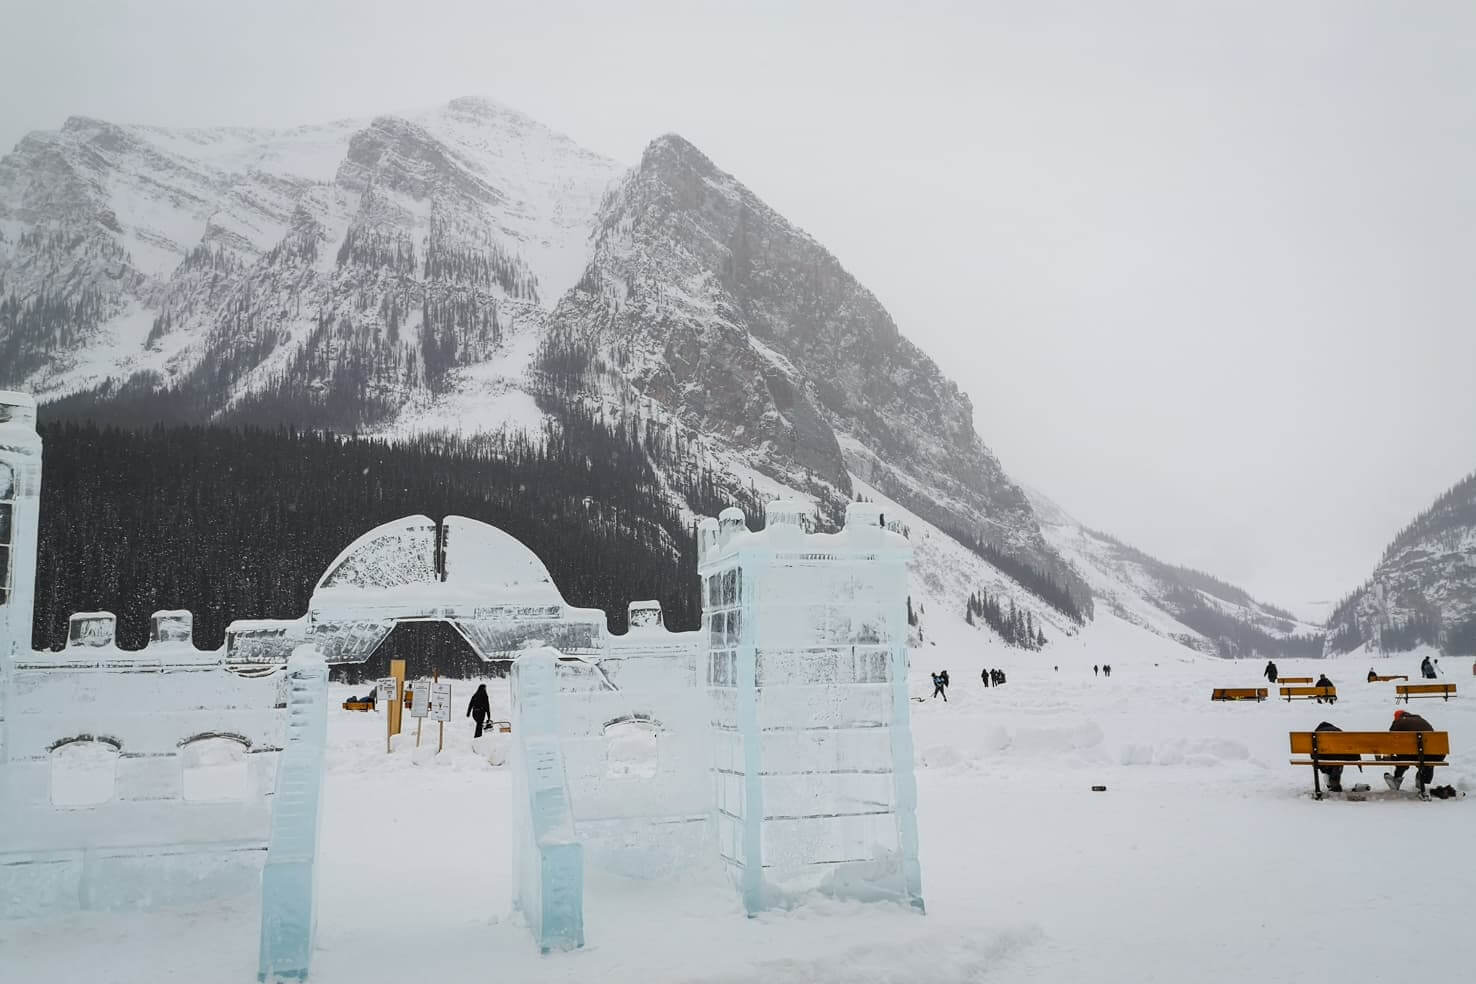 Cross country ski trails in Banff National Park - Moraine-Fairview-Lake Louise Loop